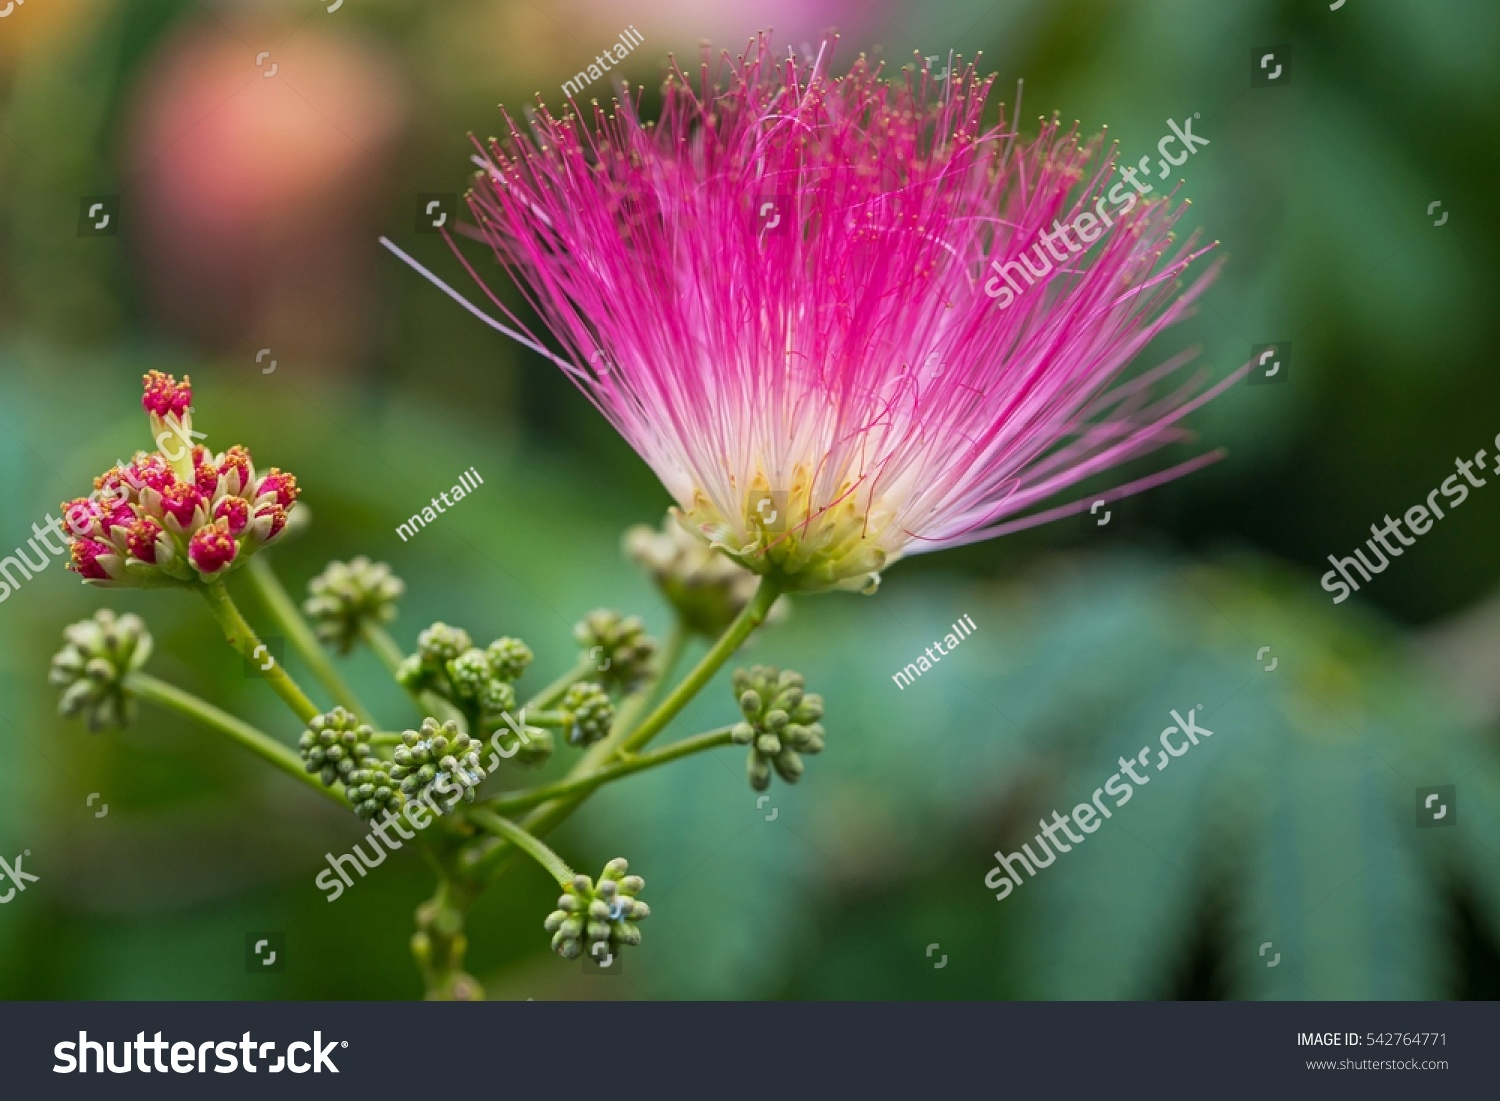 Royalty Free Pink Fluffy Flowers On Blooming Albizia 542764771